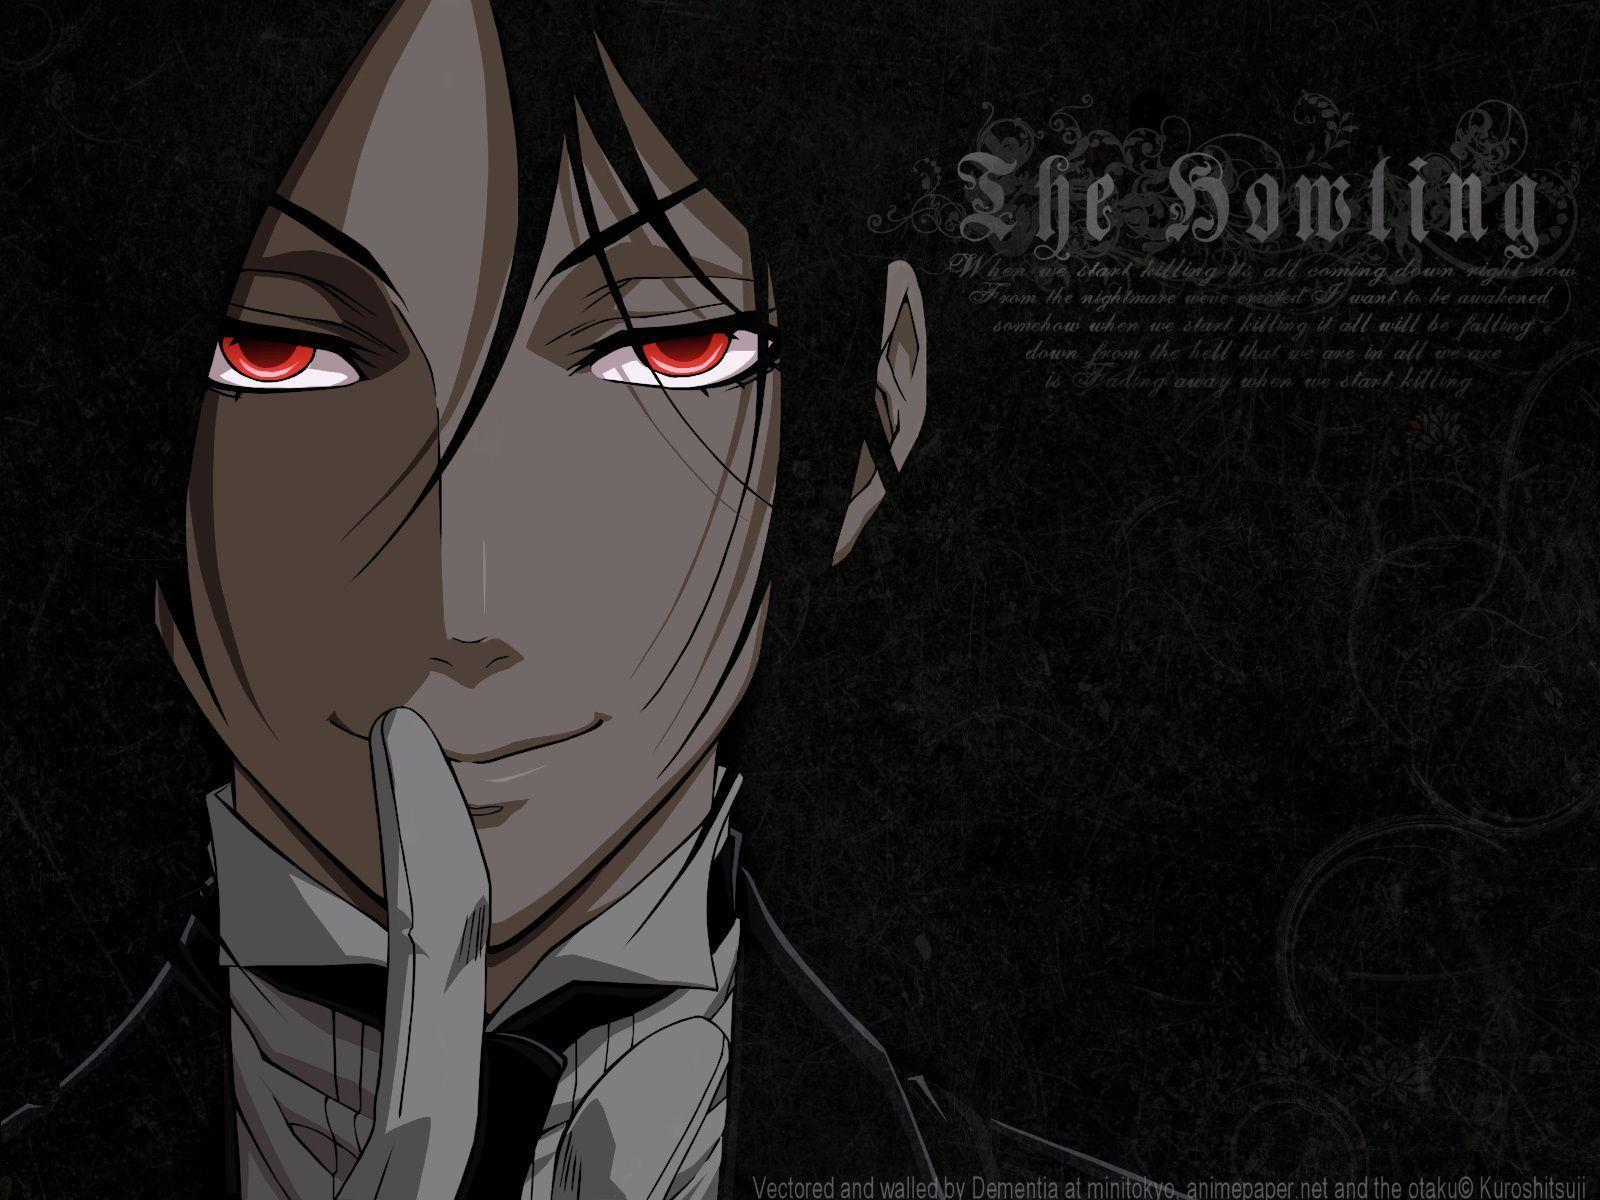 Black Butler Sebastian Wallpaper Images & Pictures - Becuo